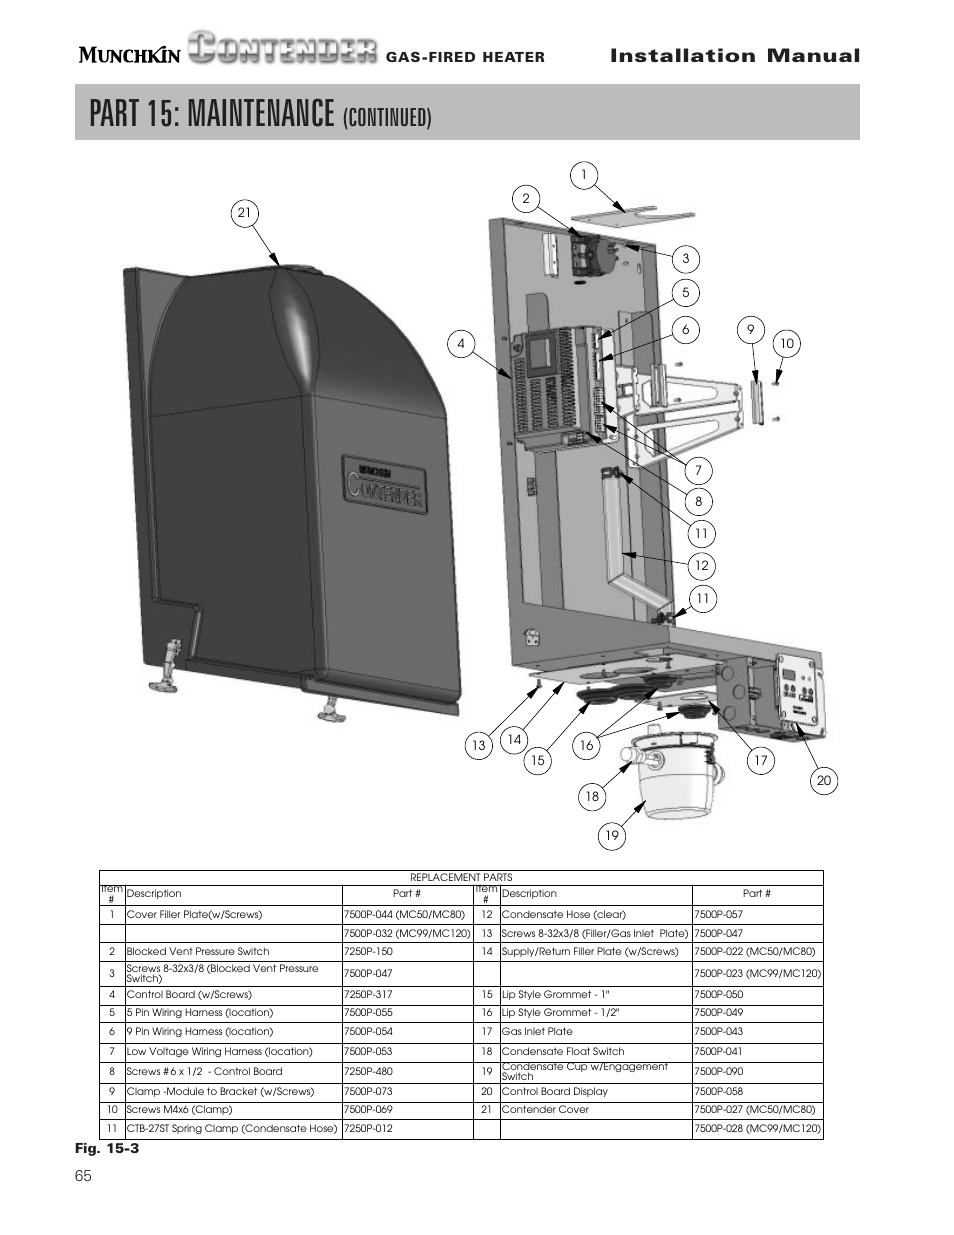 Part 15 Maintenance Continued Installation Manual